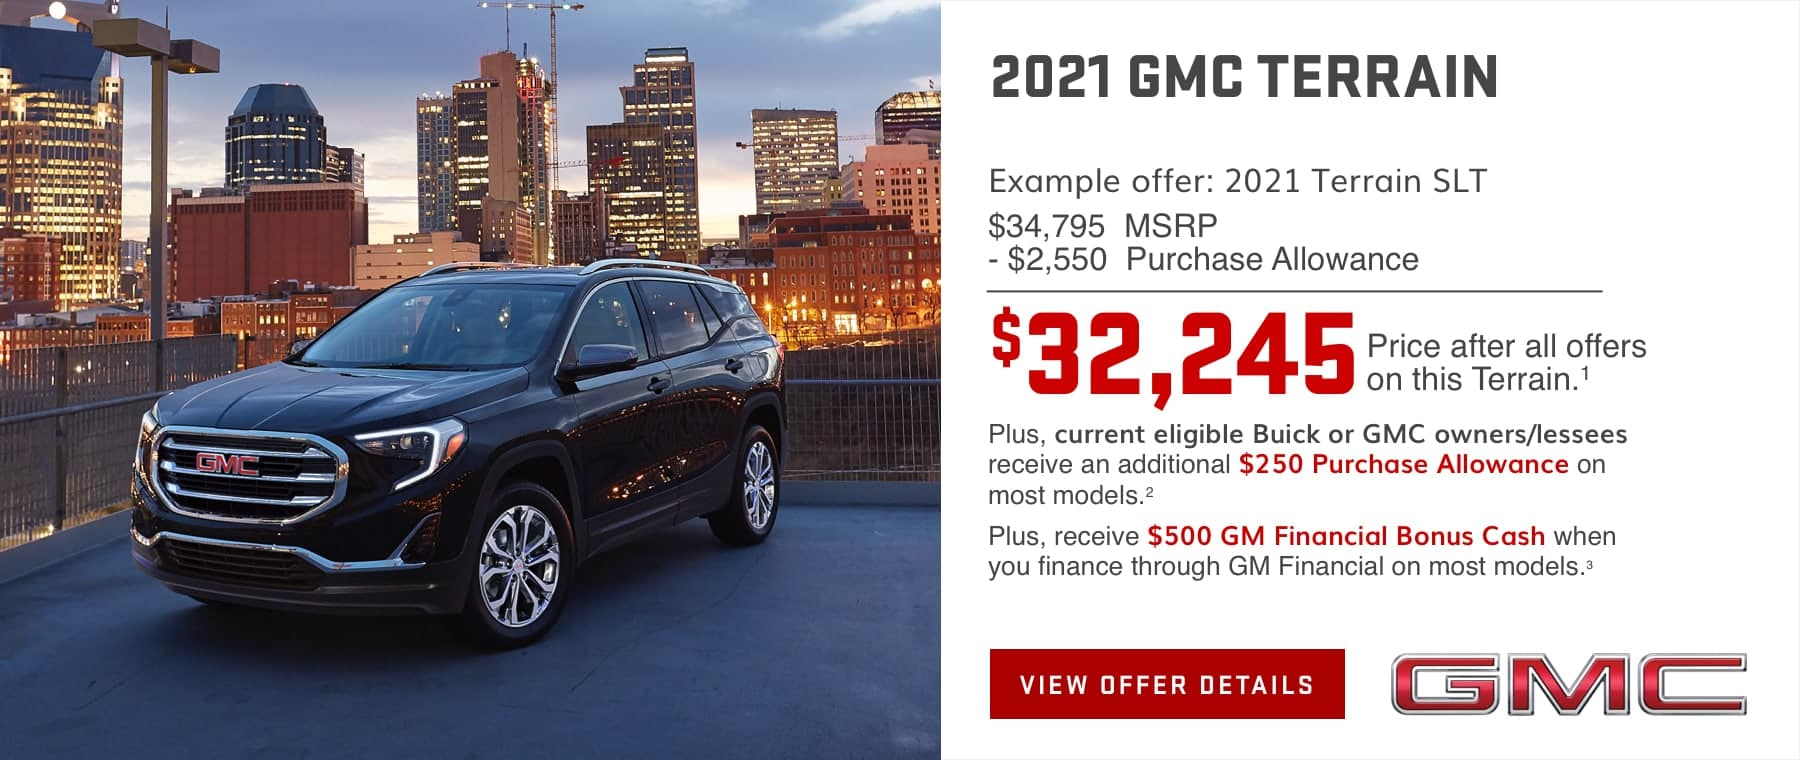 Example offer: 2021 Terrain SLT $34,795 MSRP -$2,550 Purchase Allowance $32,245 Price after all offers on this Terrain.1 Plus, current eligible Buick or GMC owners/lessees receive an additional $250 Purchase Allowance on most models.2 Plus, receive $500 GM Financial Bonus Cash when you finance through GM Financial on most models.3